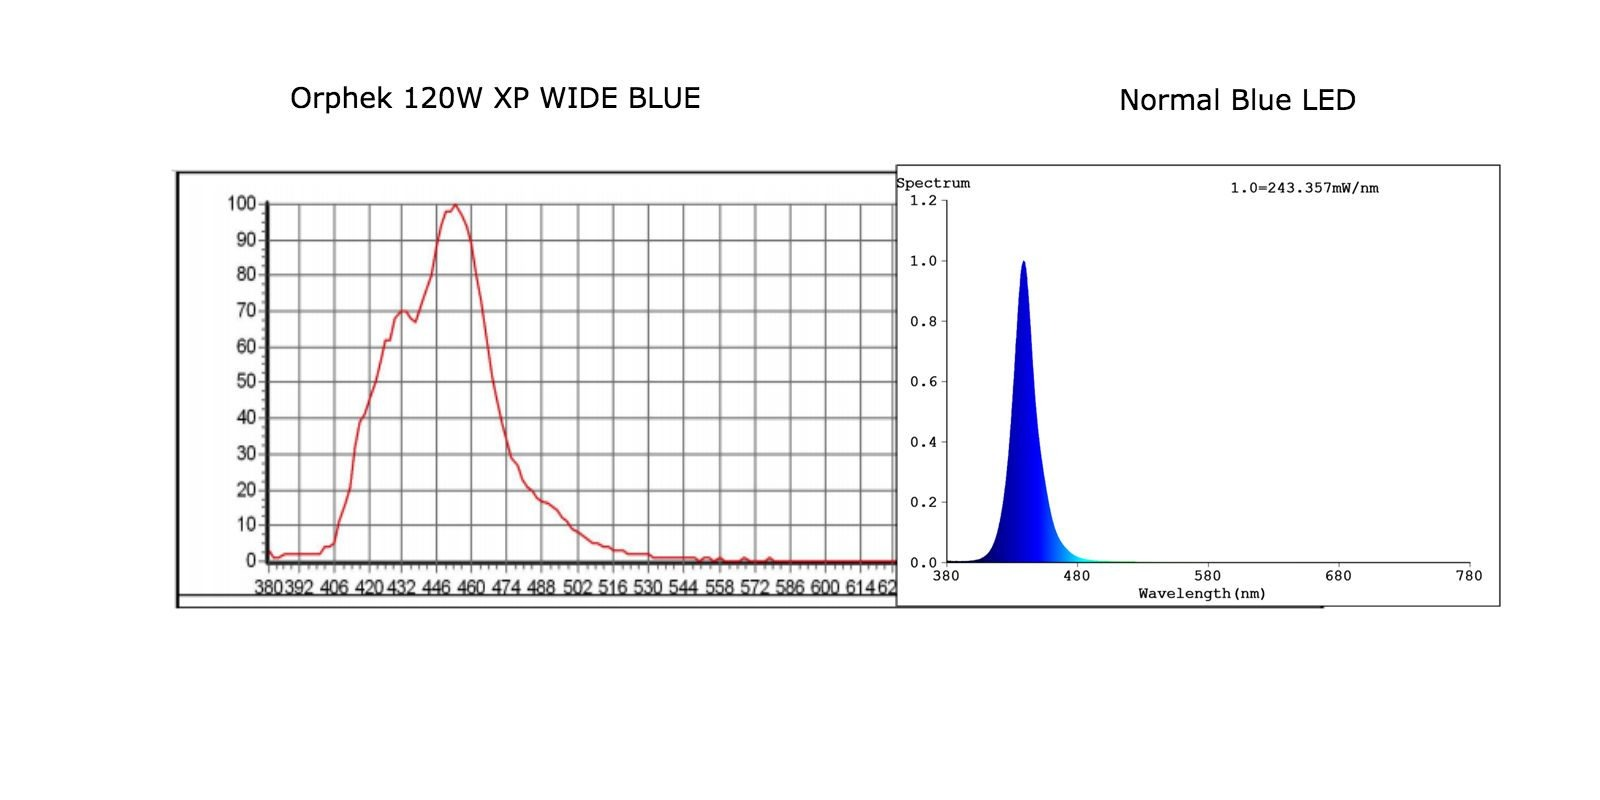 Orphek 120W-XP Wide BLue Spectrum vs LED Biru Normal